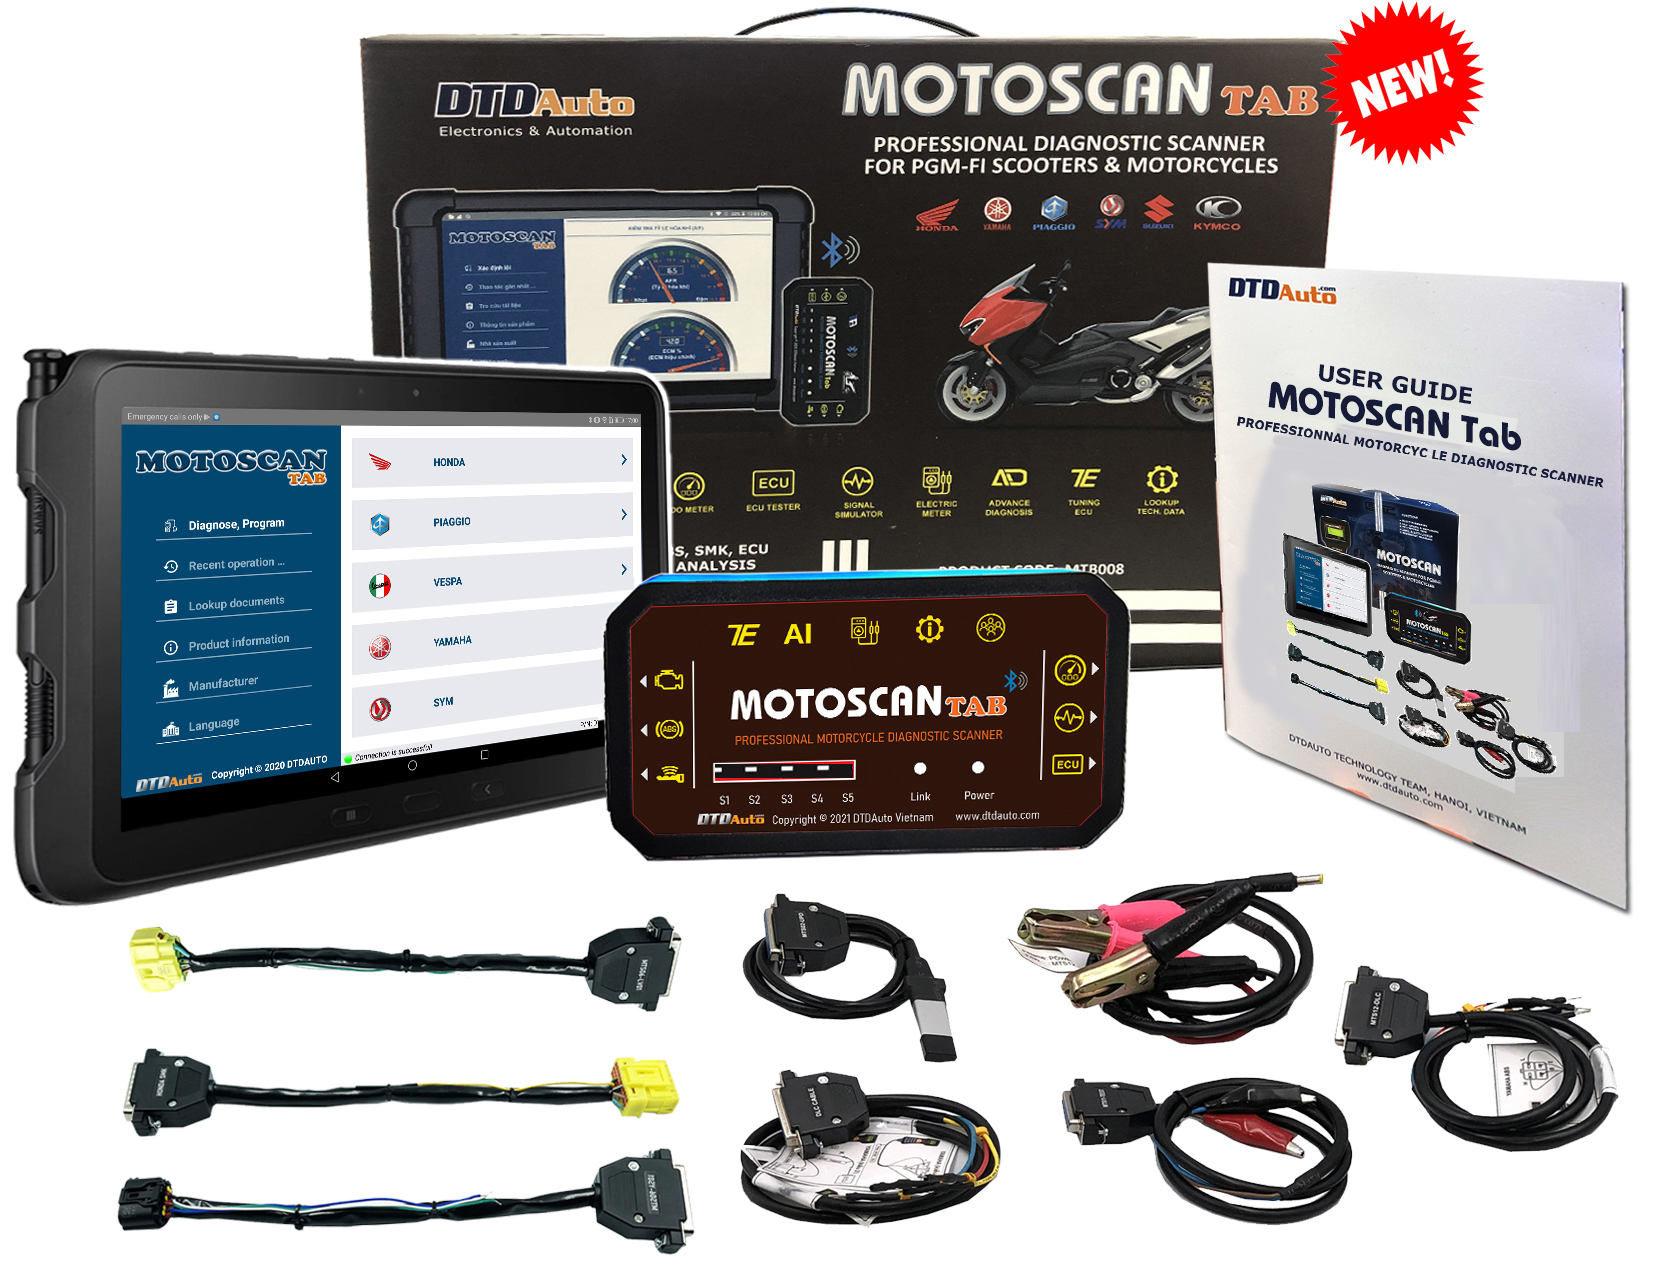 MOTOSCAN TAB - SMART DEVICE TO DIAGNOSE, REPAIR ELECTRONIC AND ELECTRICAL SYSTEMS FOR NEW GENERATION MOTORCYCLES